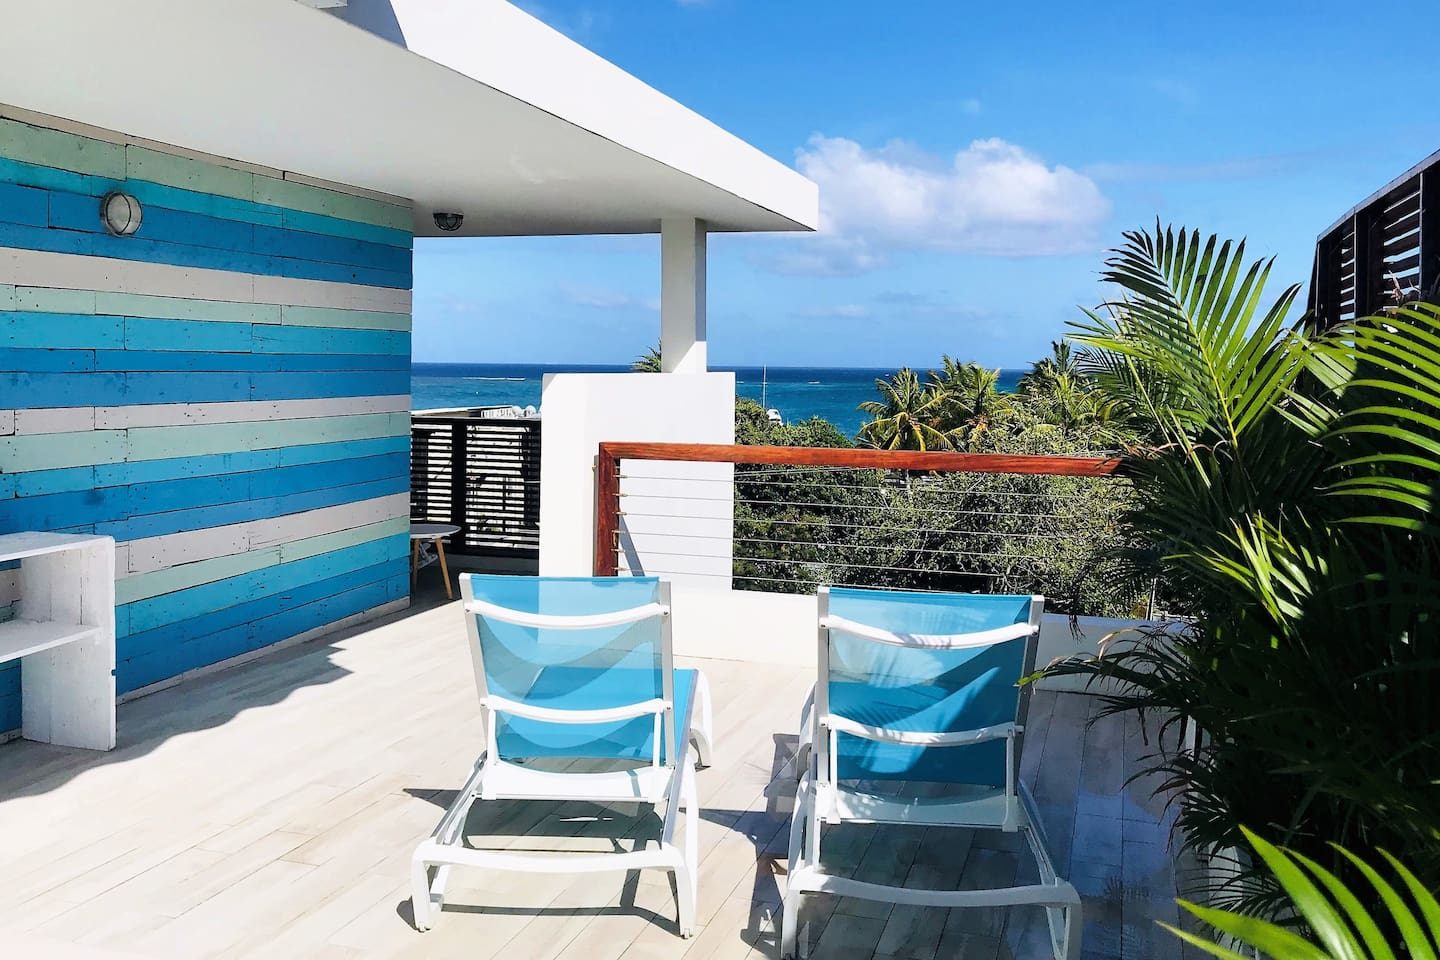 60 square meters terrace. Sunbeds, outdoor shower, table and benches.